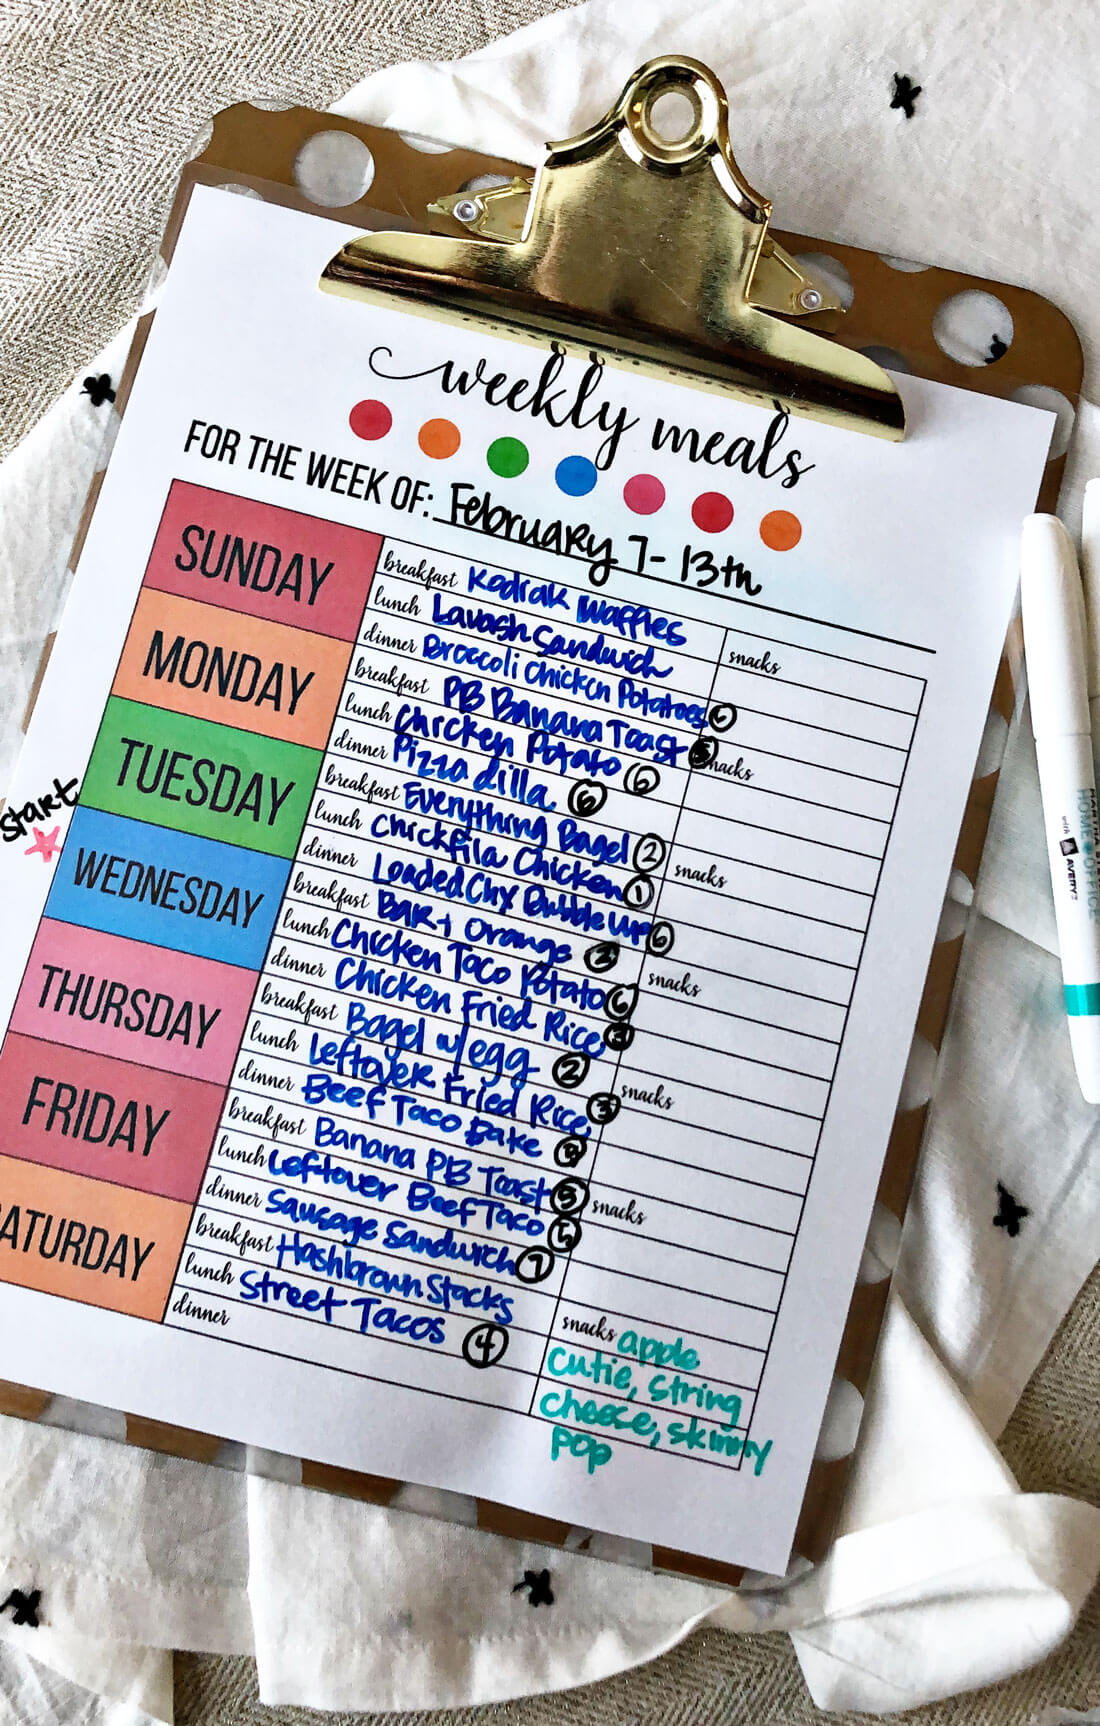 Printable Weekly Meal Planner - use this to get your calendar ready for meal prep. Filled in from www.thirtyhandmadedays.com